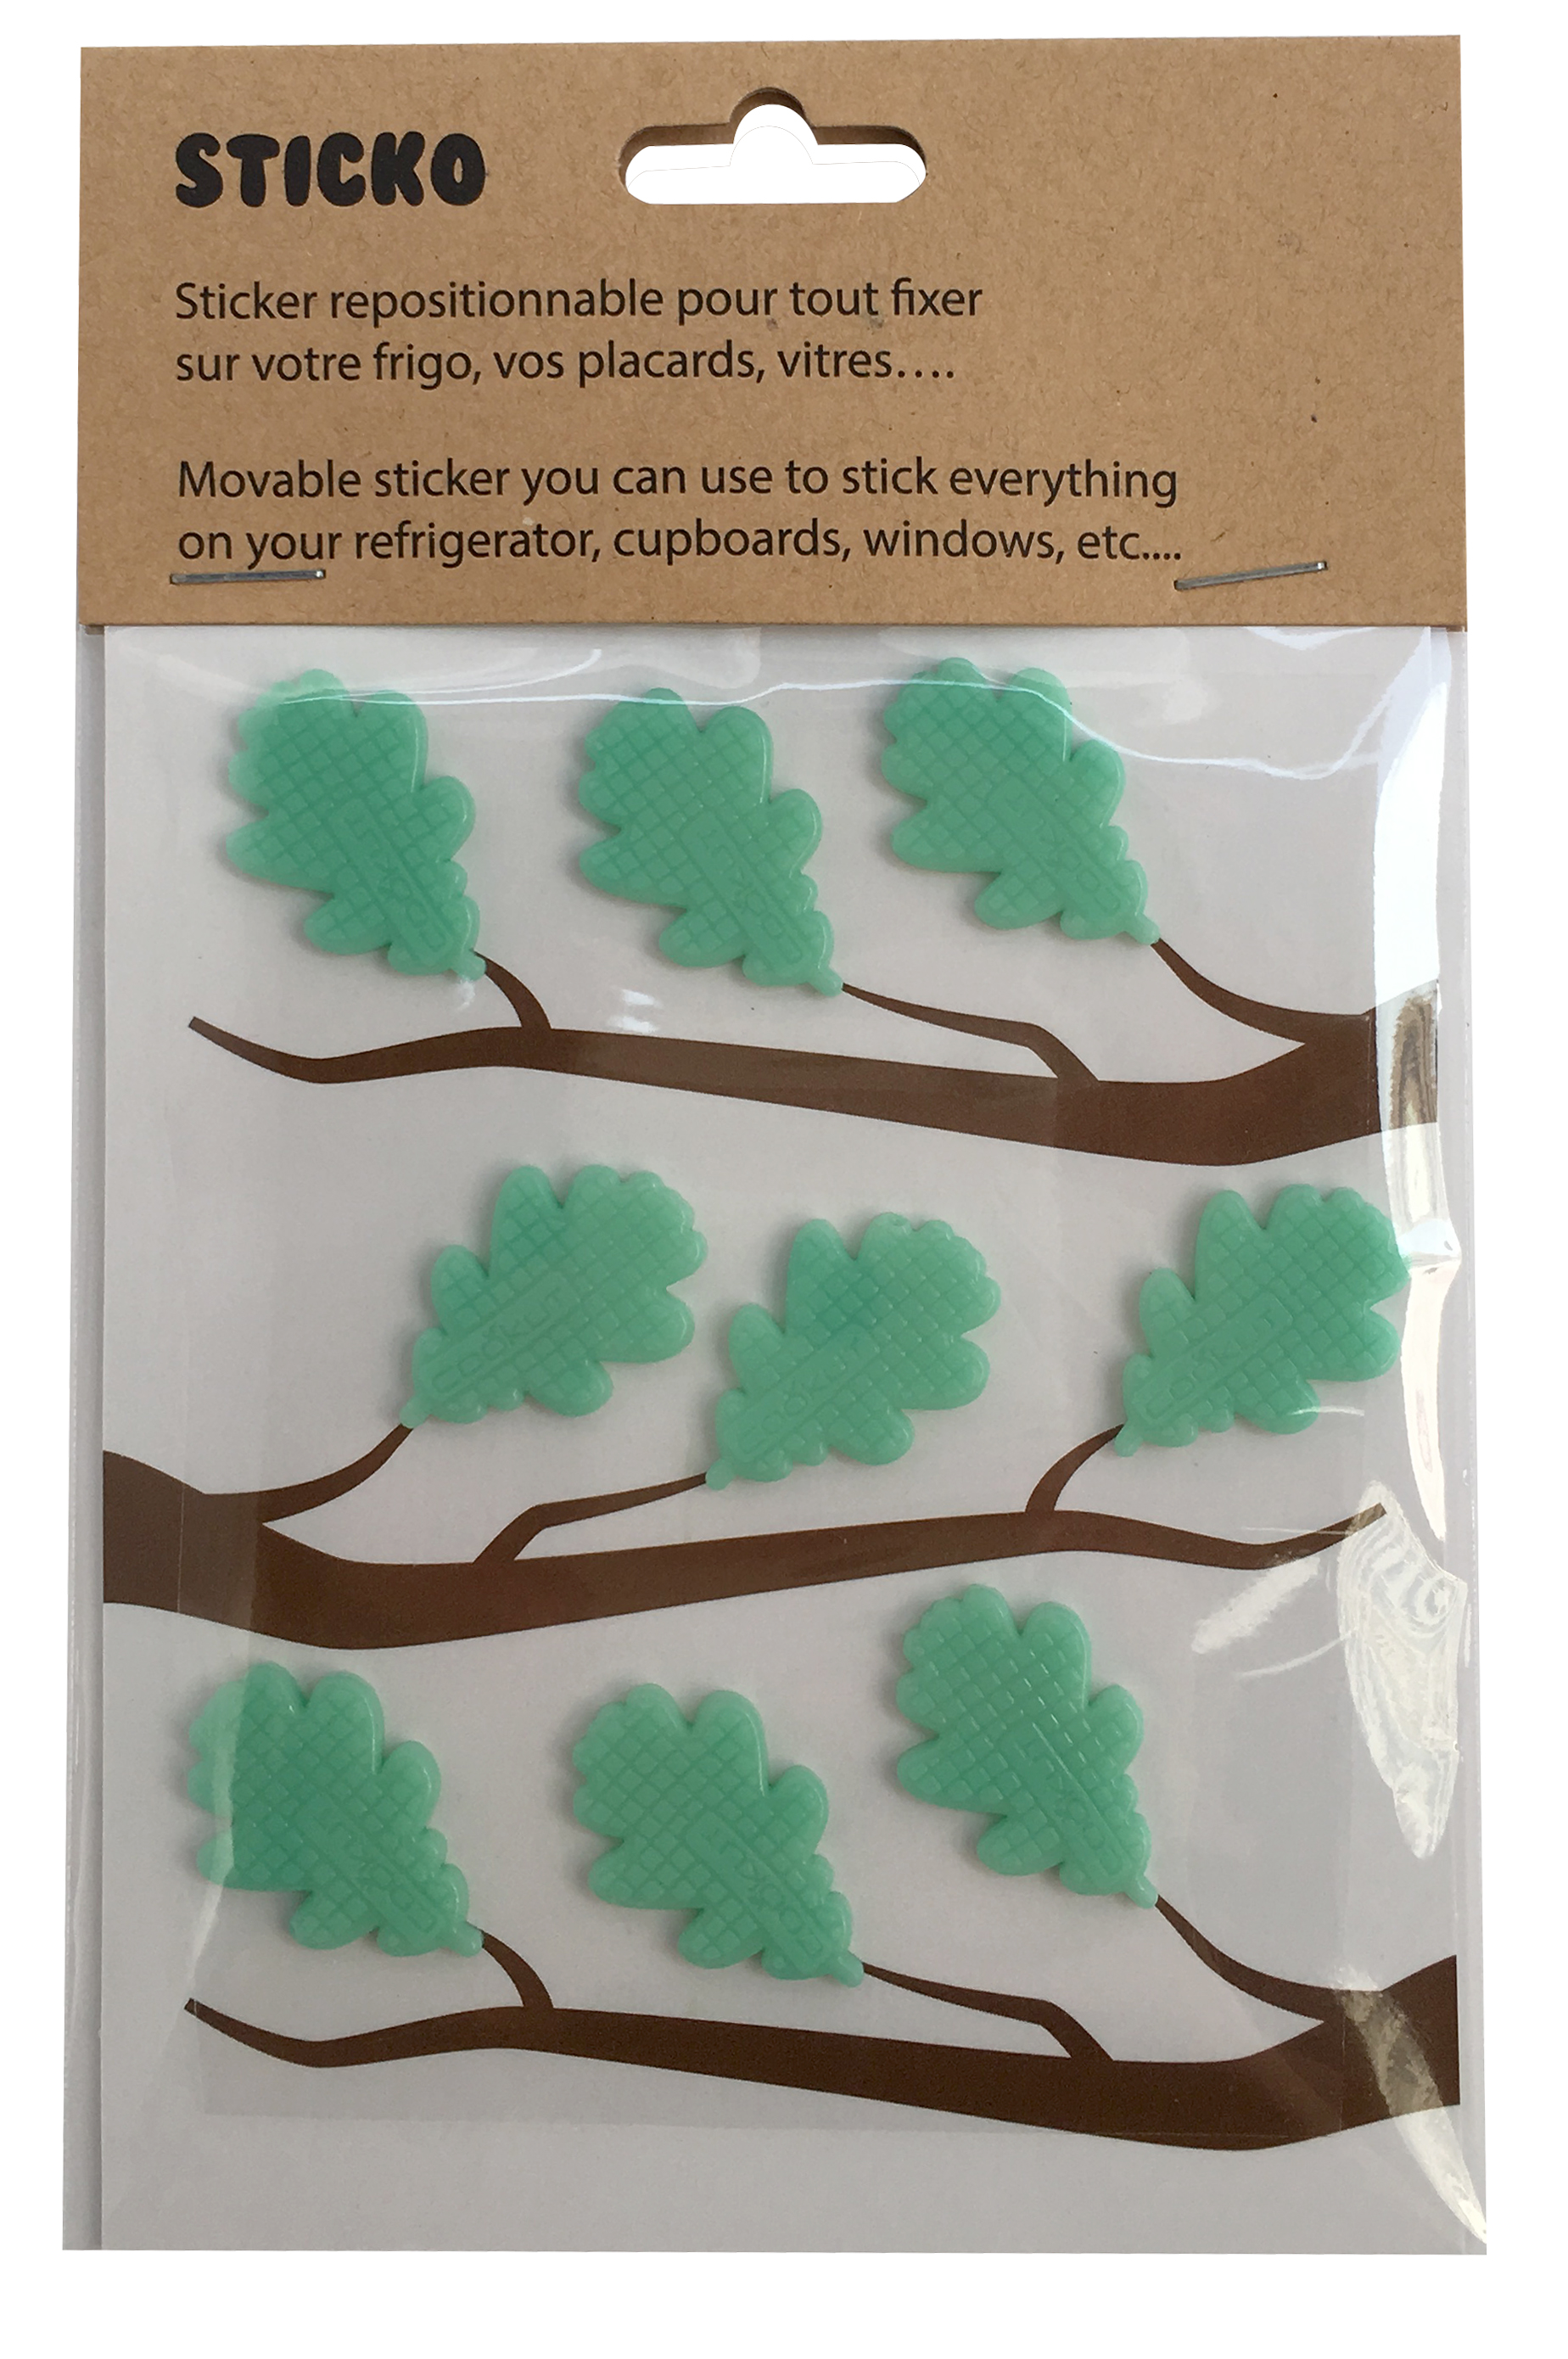 STICKO - 9 leaf shape sticky pads for fridge